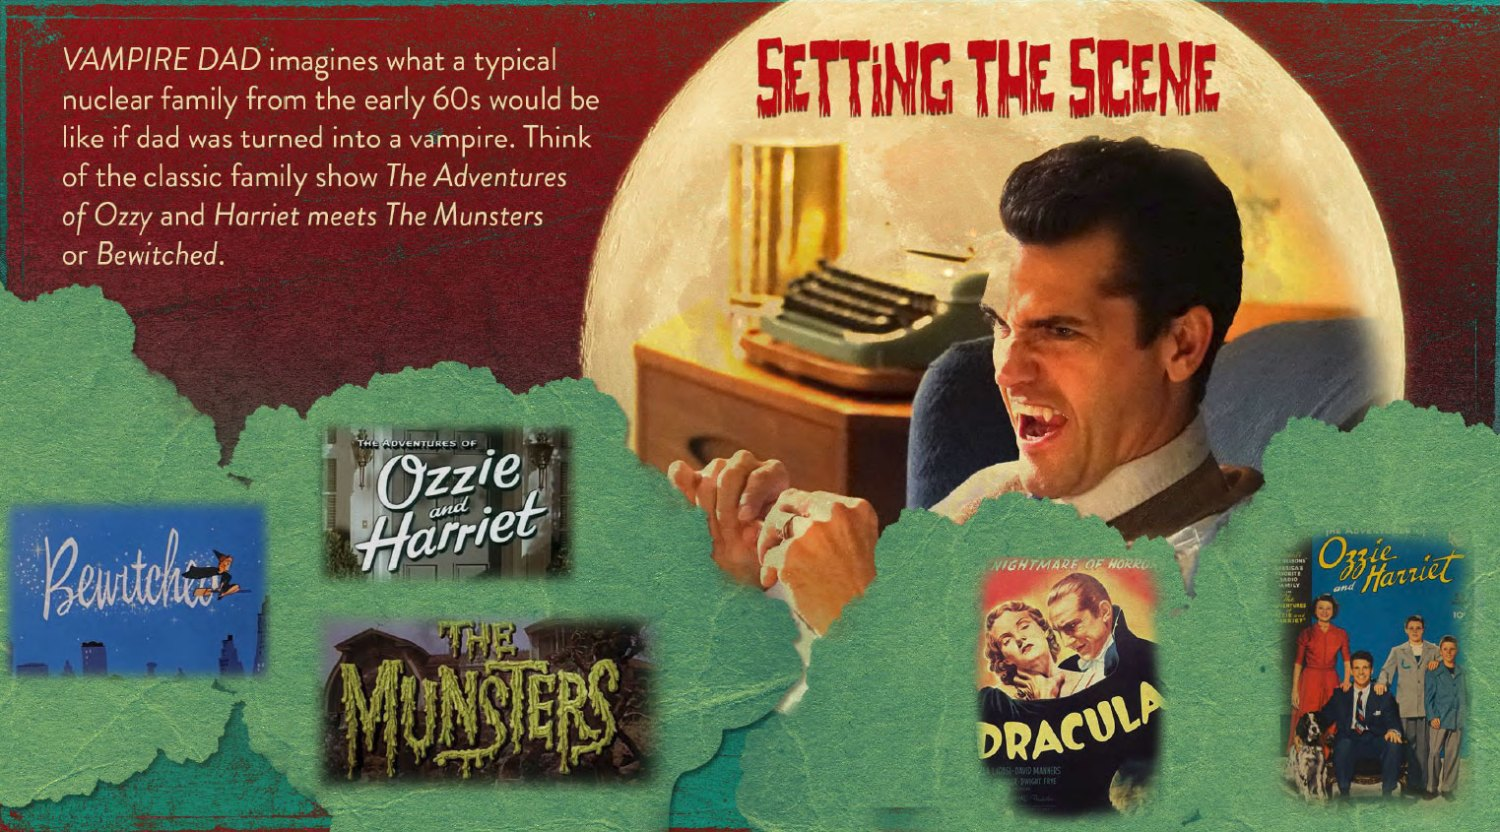 Popular shows and movies in the early 60's one would watch if their dad was turned into a vampire.